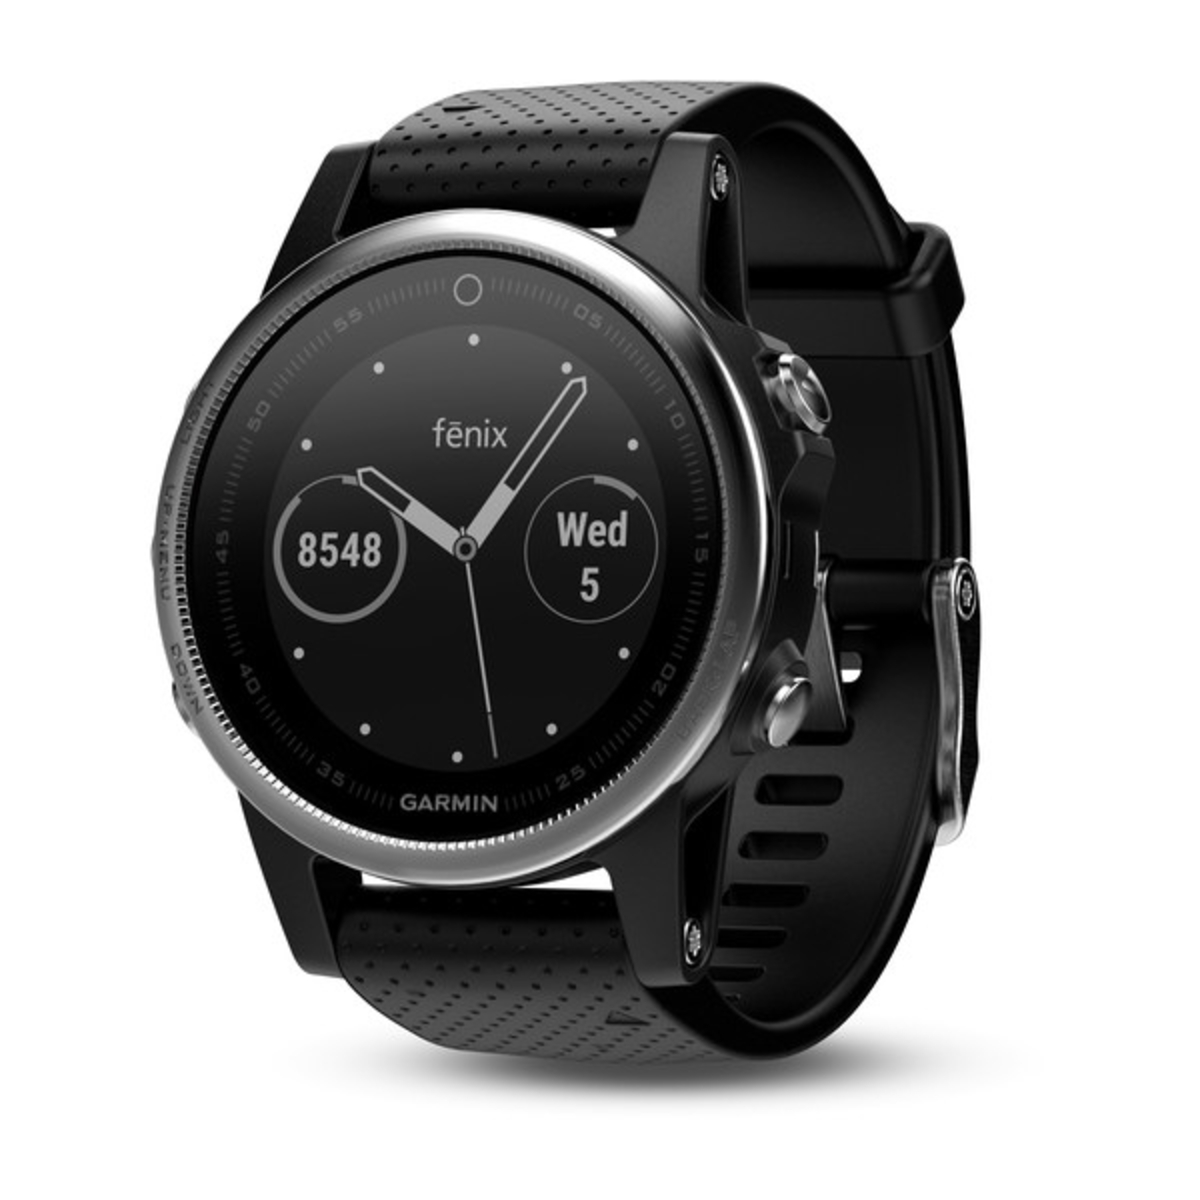 Garmin Fnix 5s Sapphire Black Multisport Gps Watch With Elevate Suunto Ambit3 Peak Hr For Outdoor Sports Wrist Heart Rate Technology